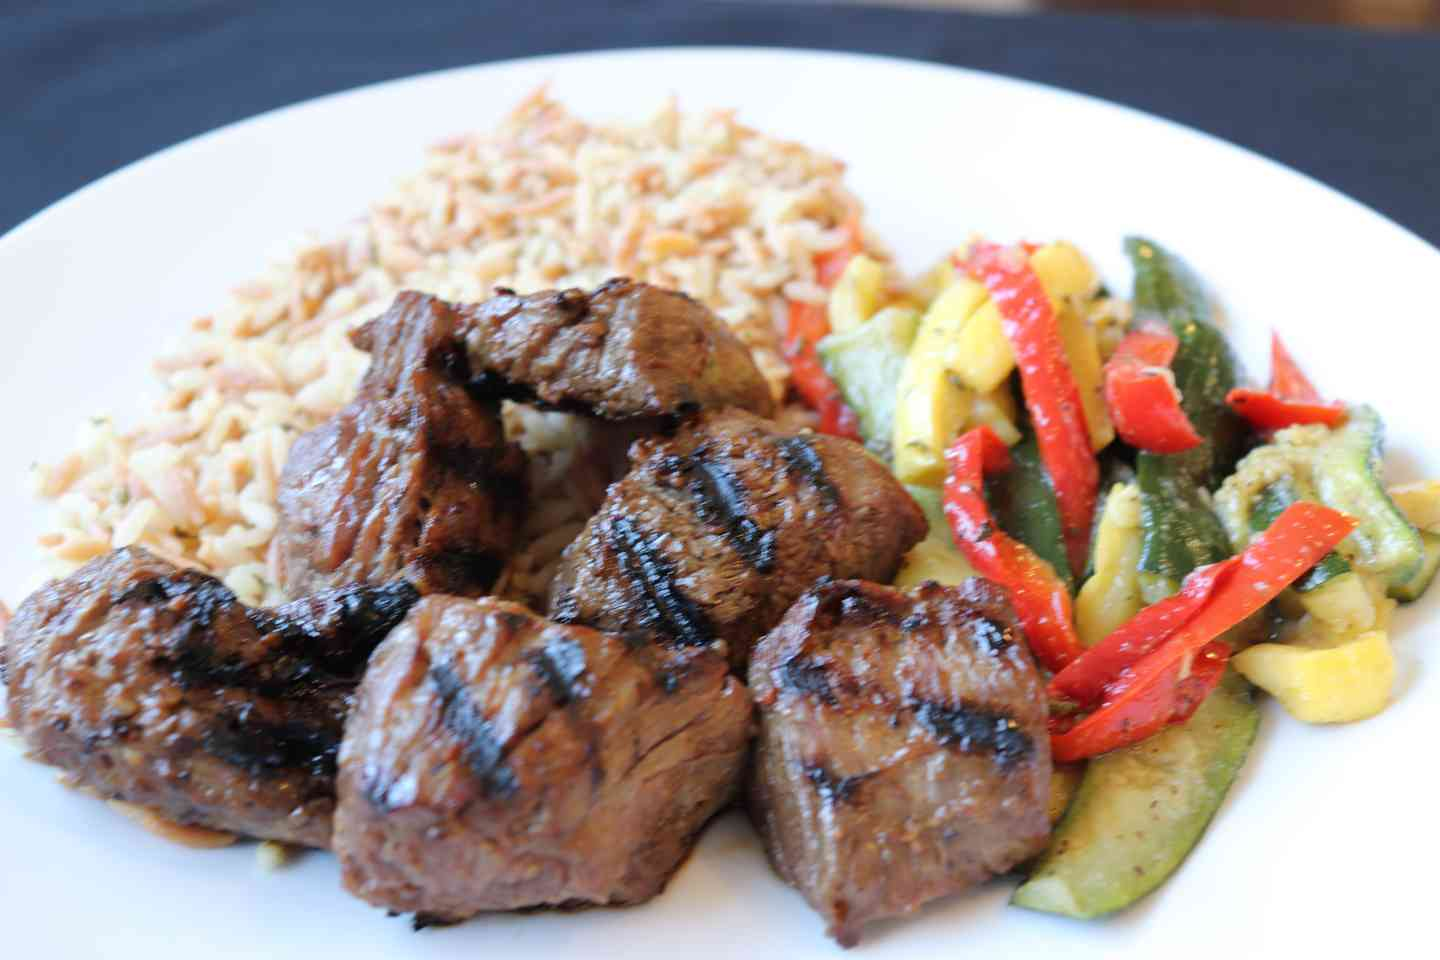 Grilled Steak Tip Entrée